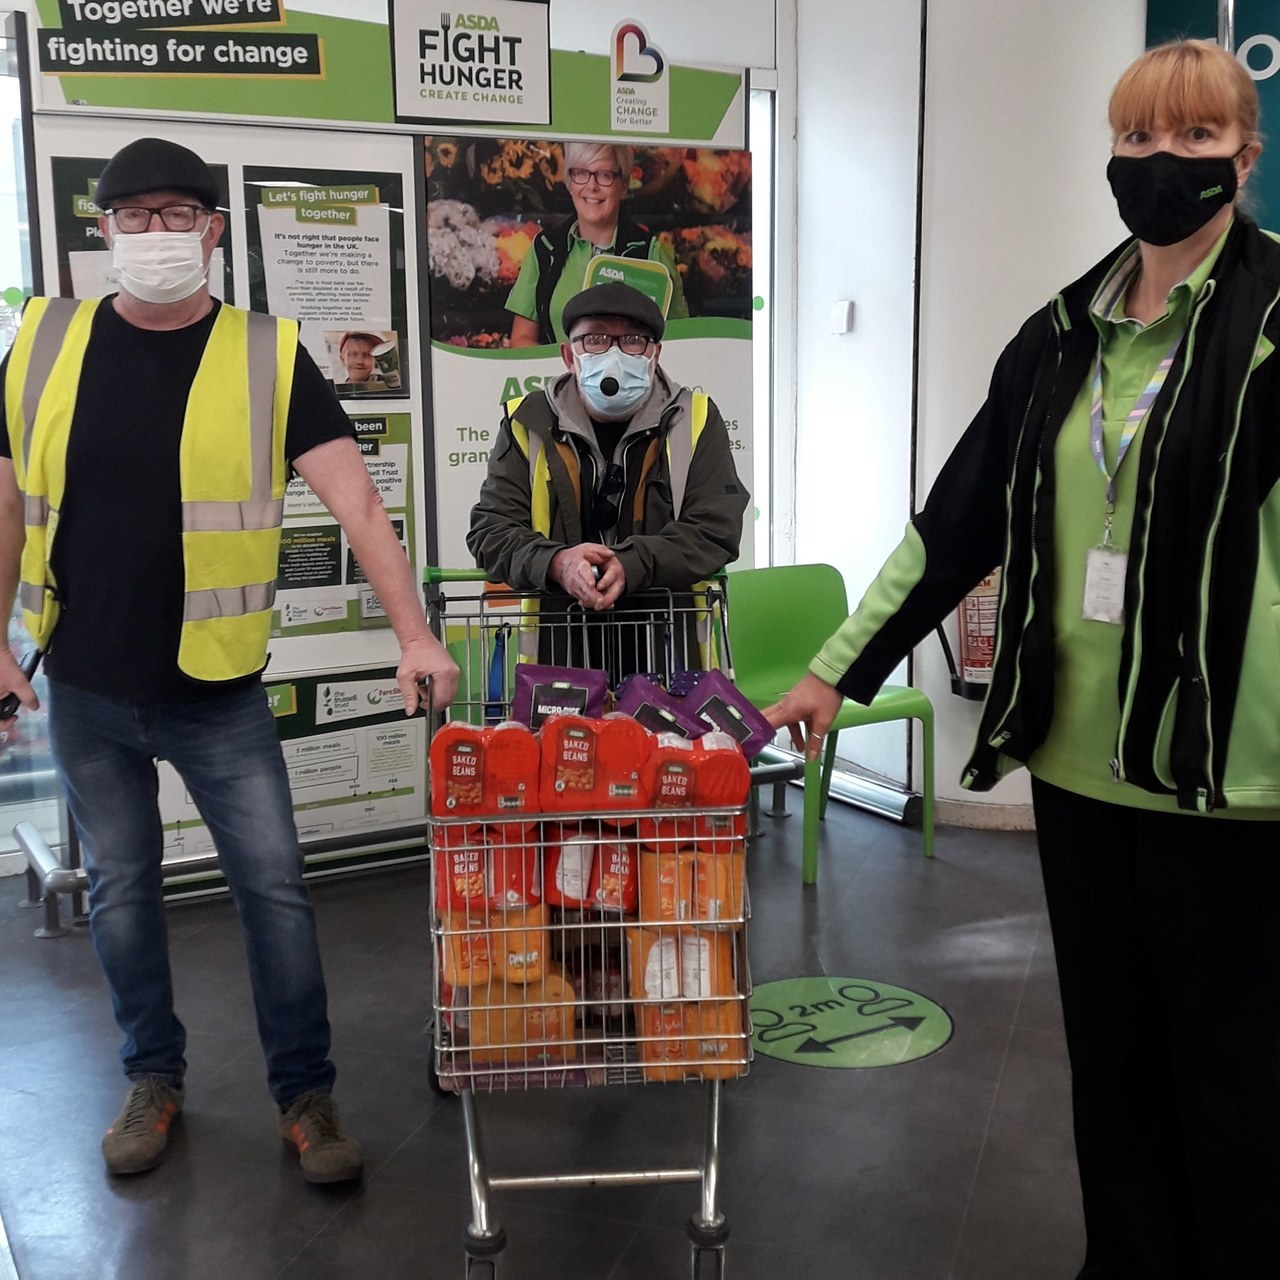 Donation of food items donated to a new group curry on the street feeding the homeless and vulnerable | Asda Colne